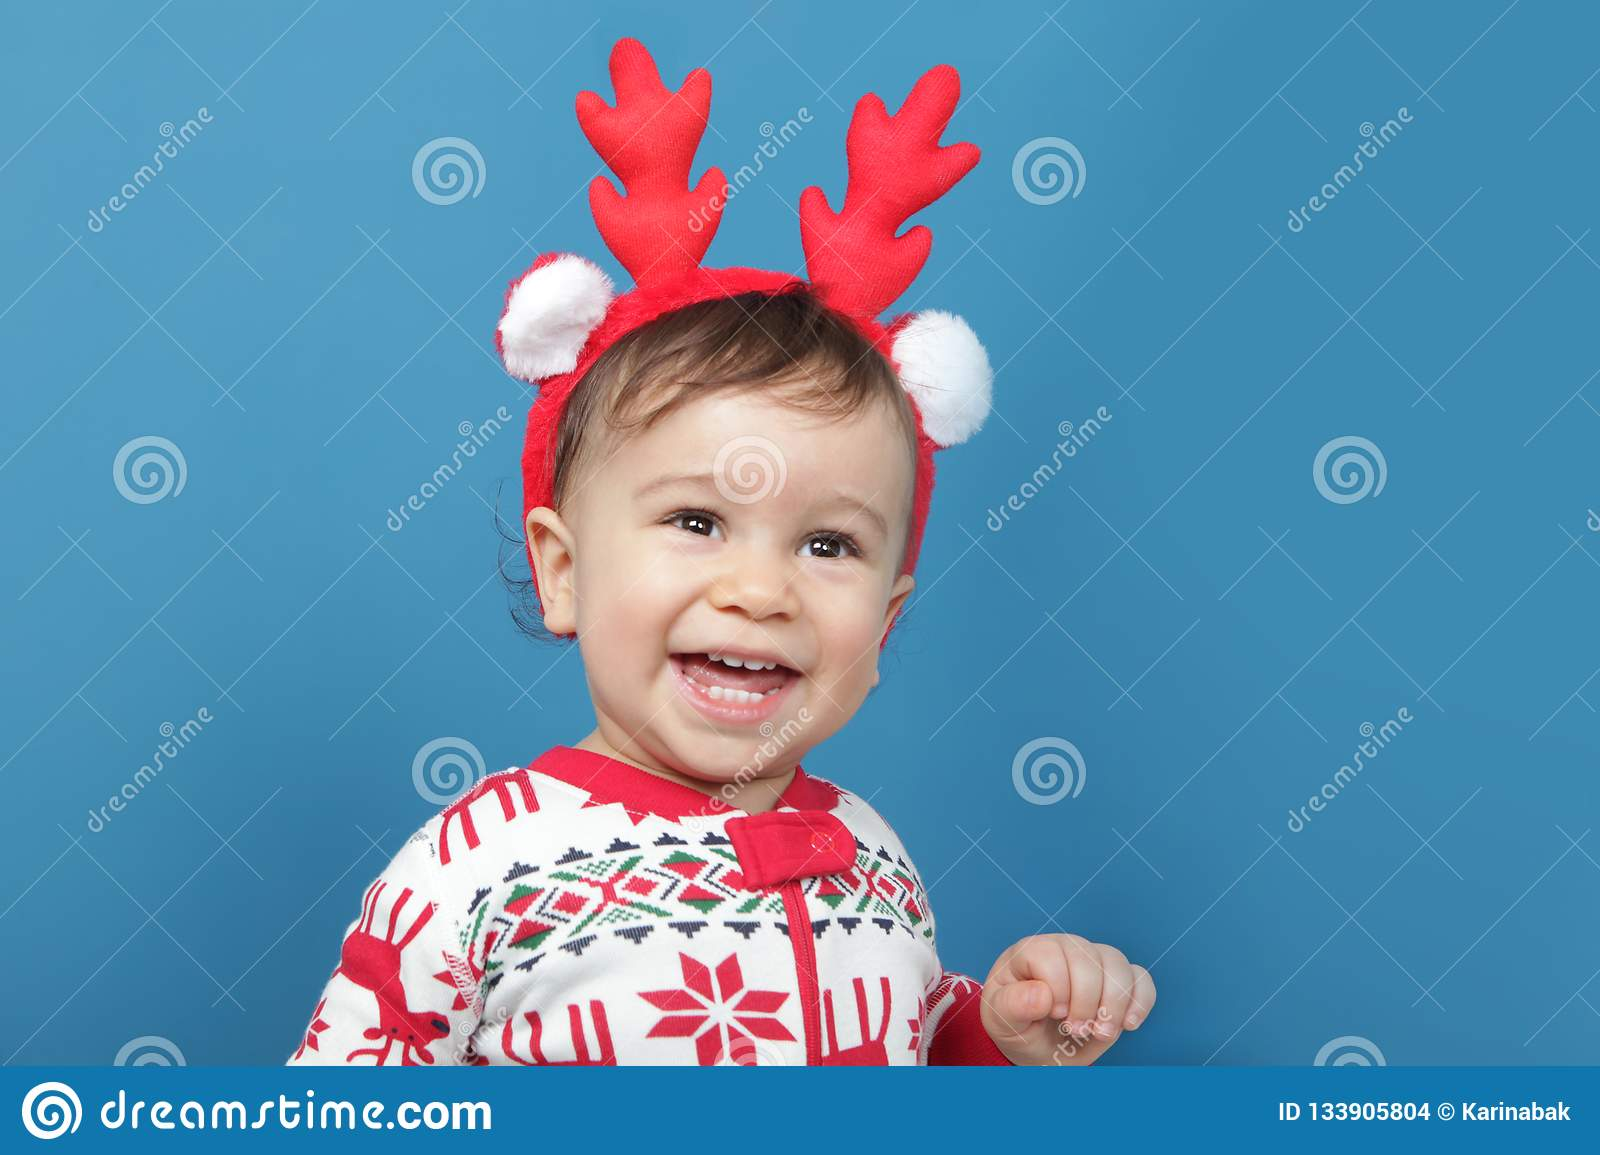 Charming little boy in Christmas pajamas